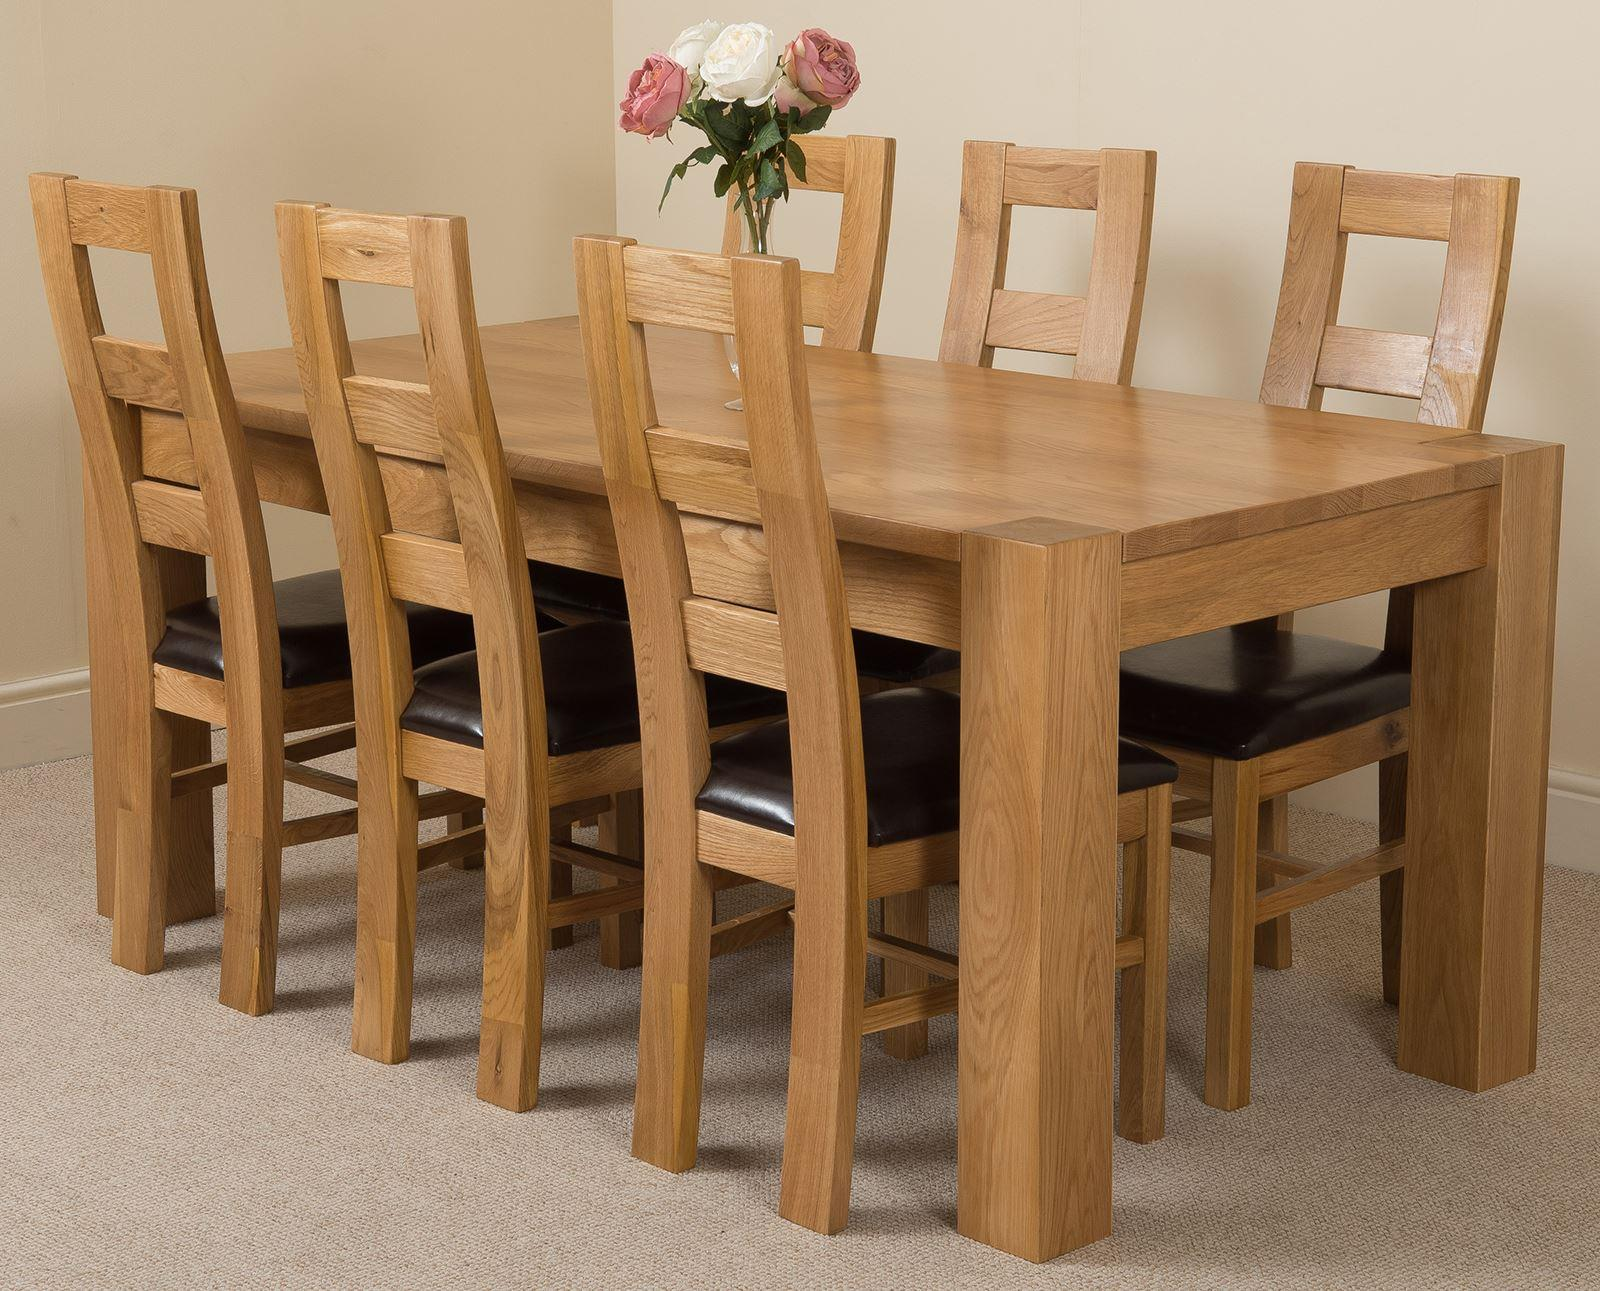 Kuba Solid Oak Dining Table & 6 Yale Solid Oak Leather Chairs